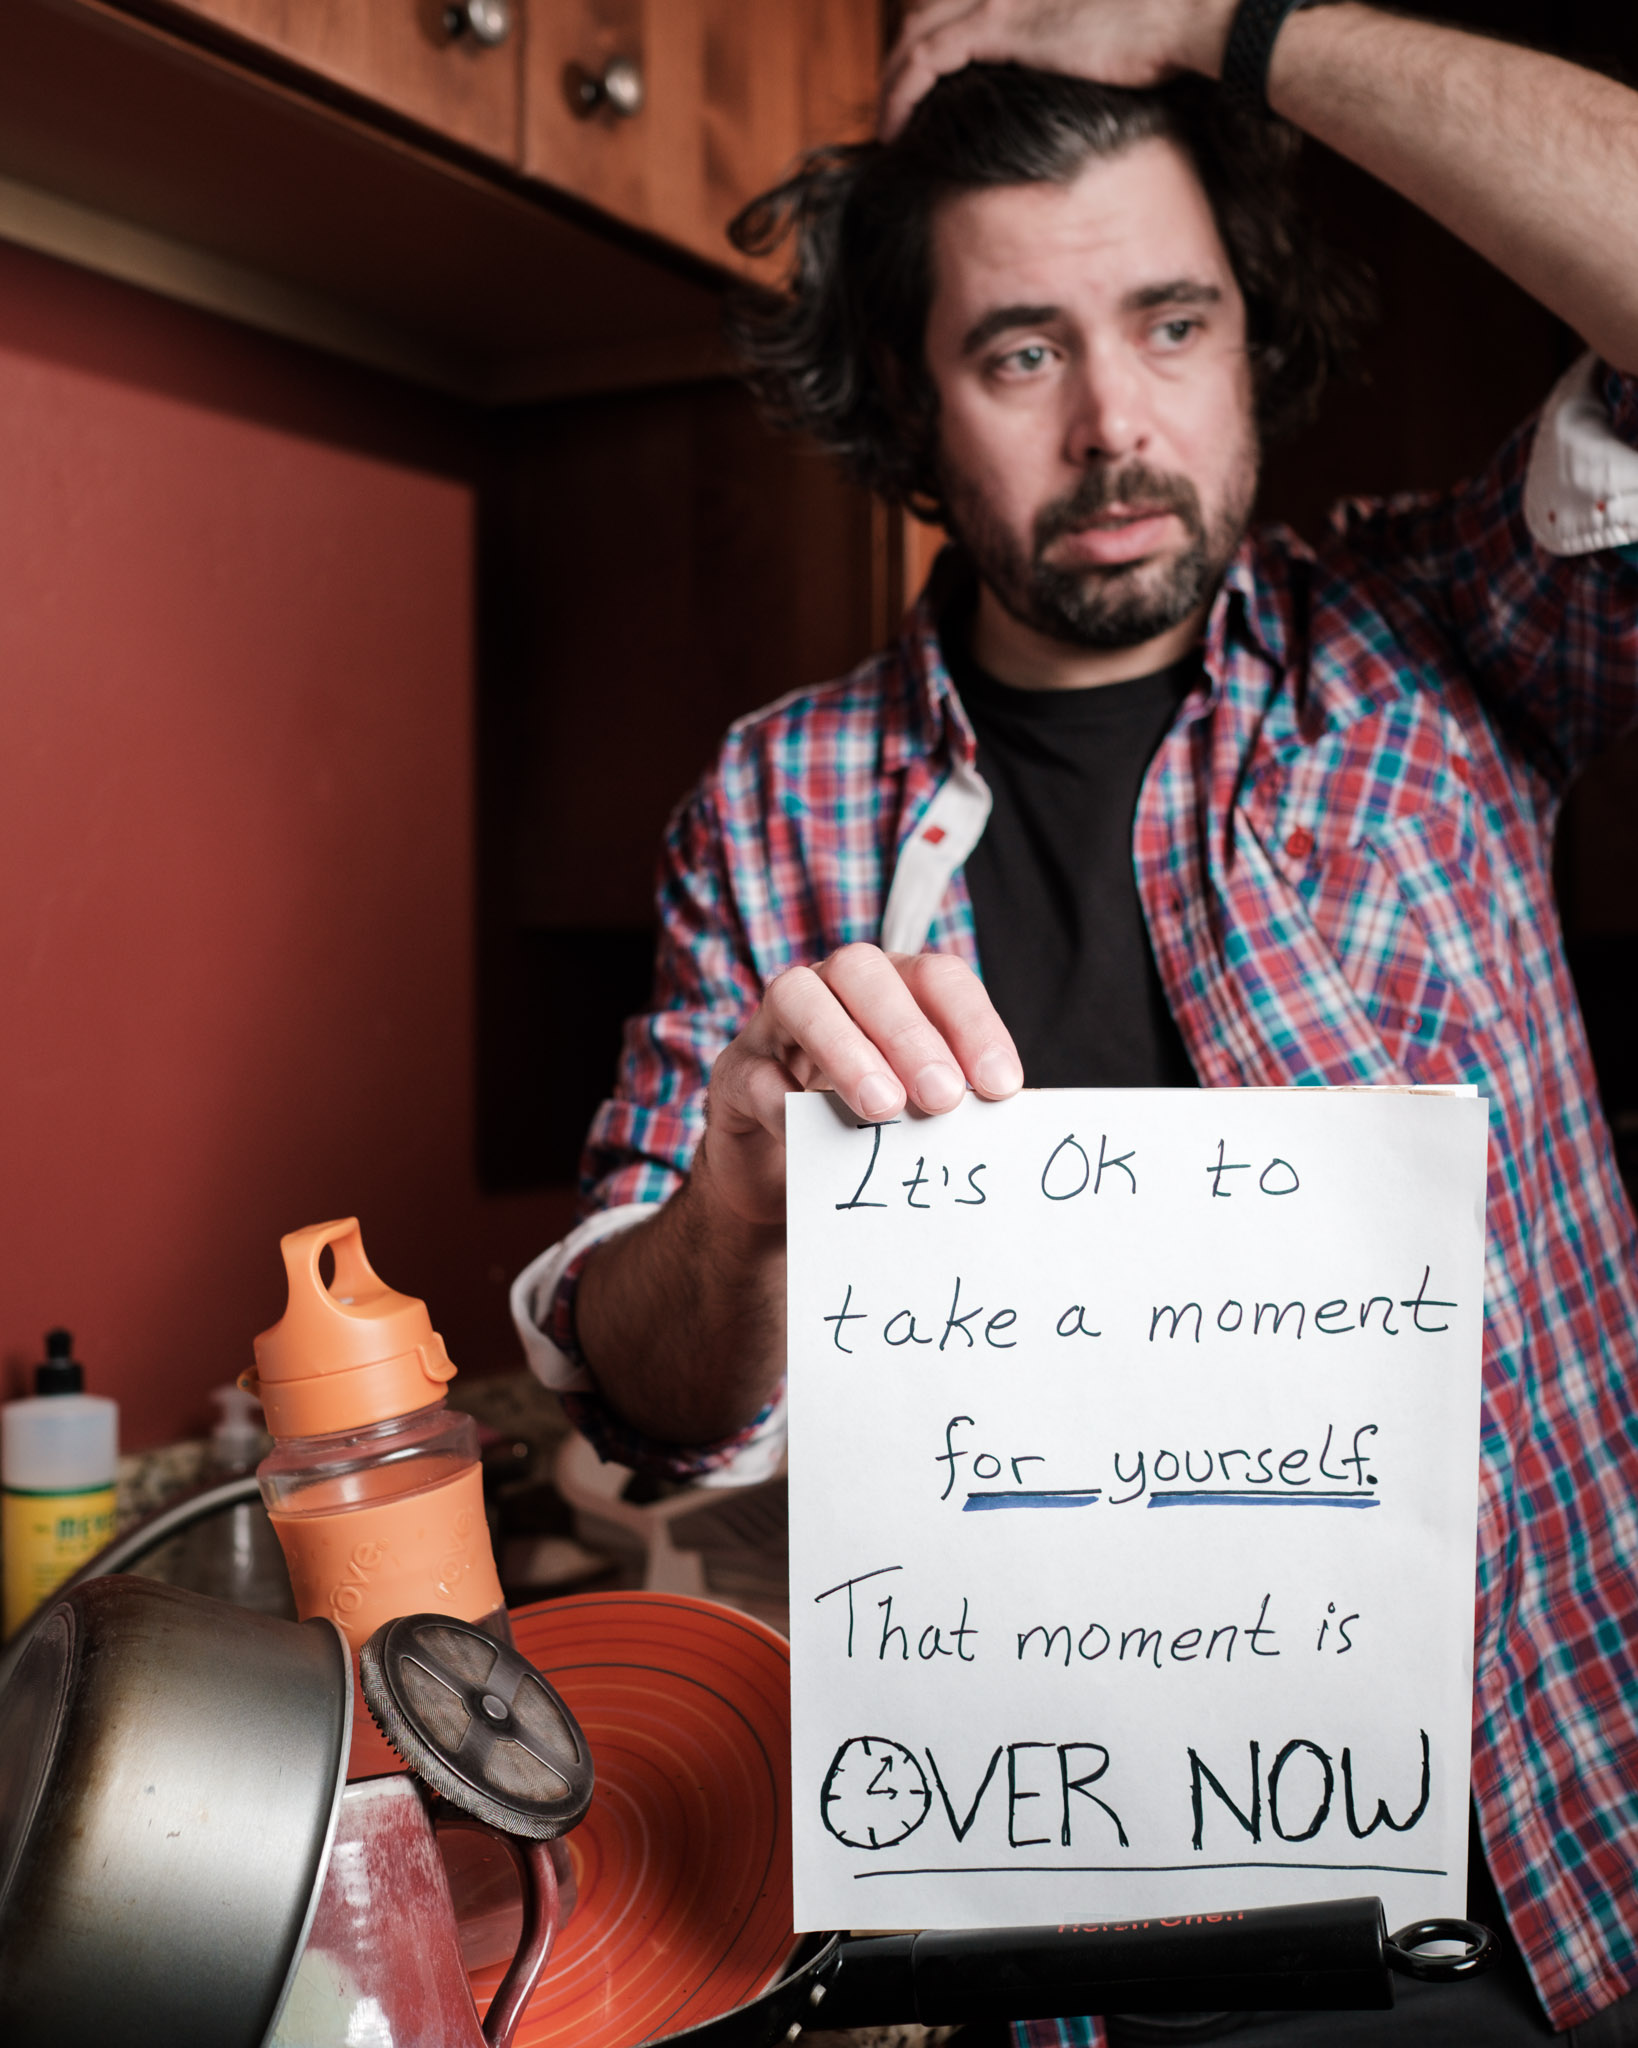 Photo of Daven in kitchen with pile of dirty dishes holding sign that reads